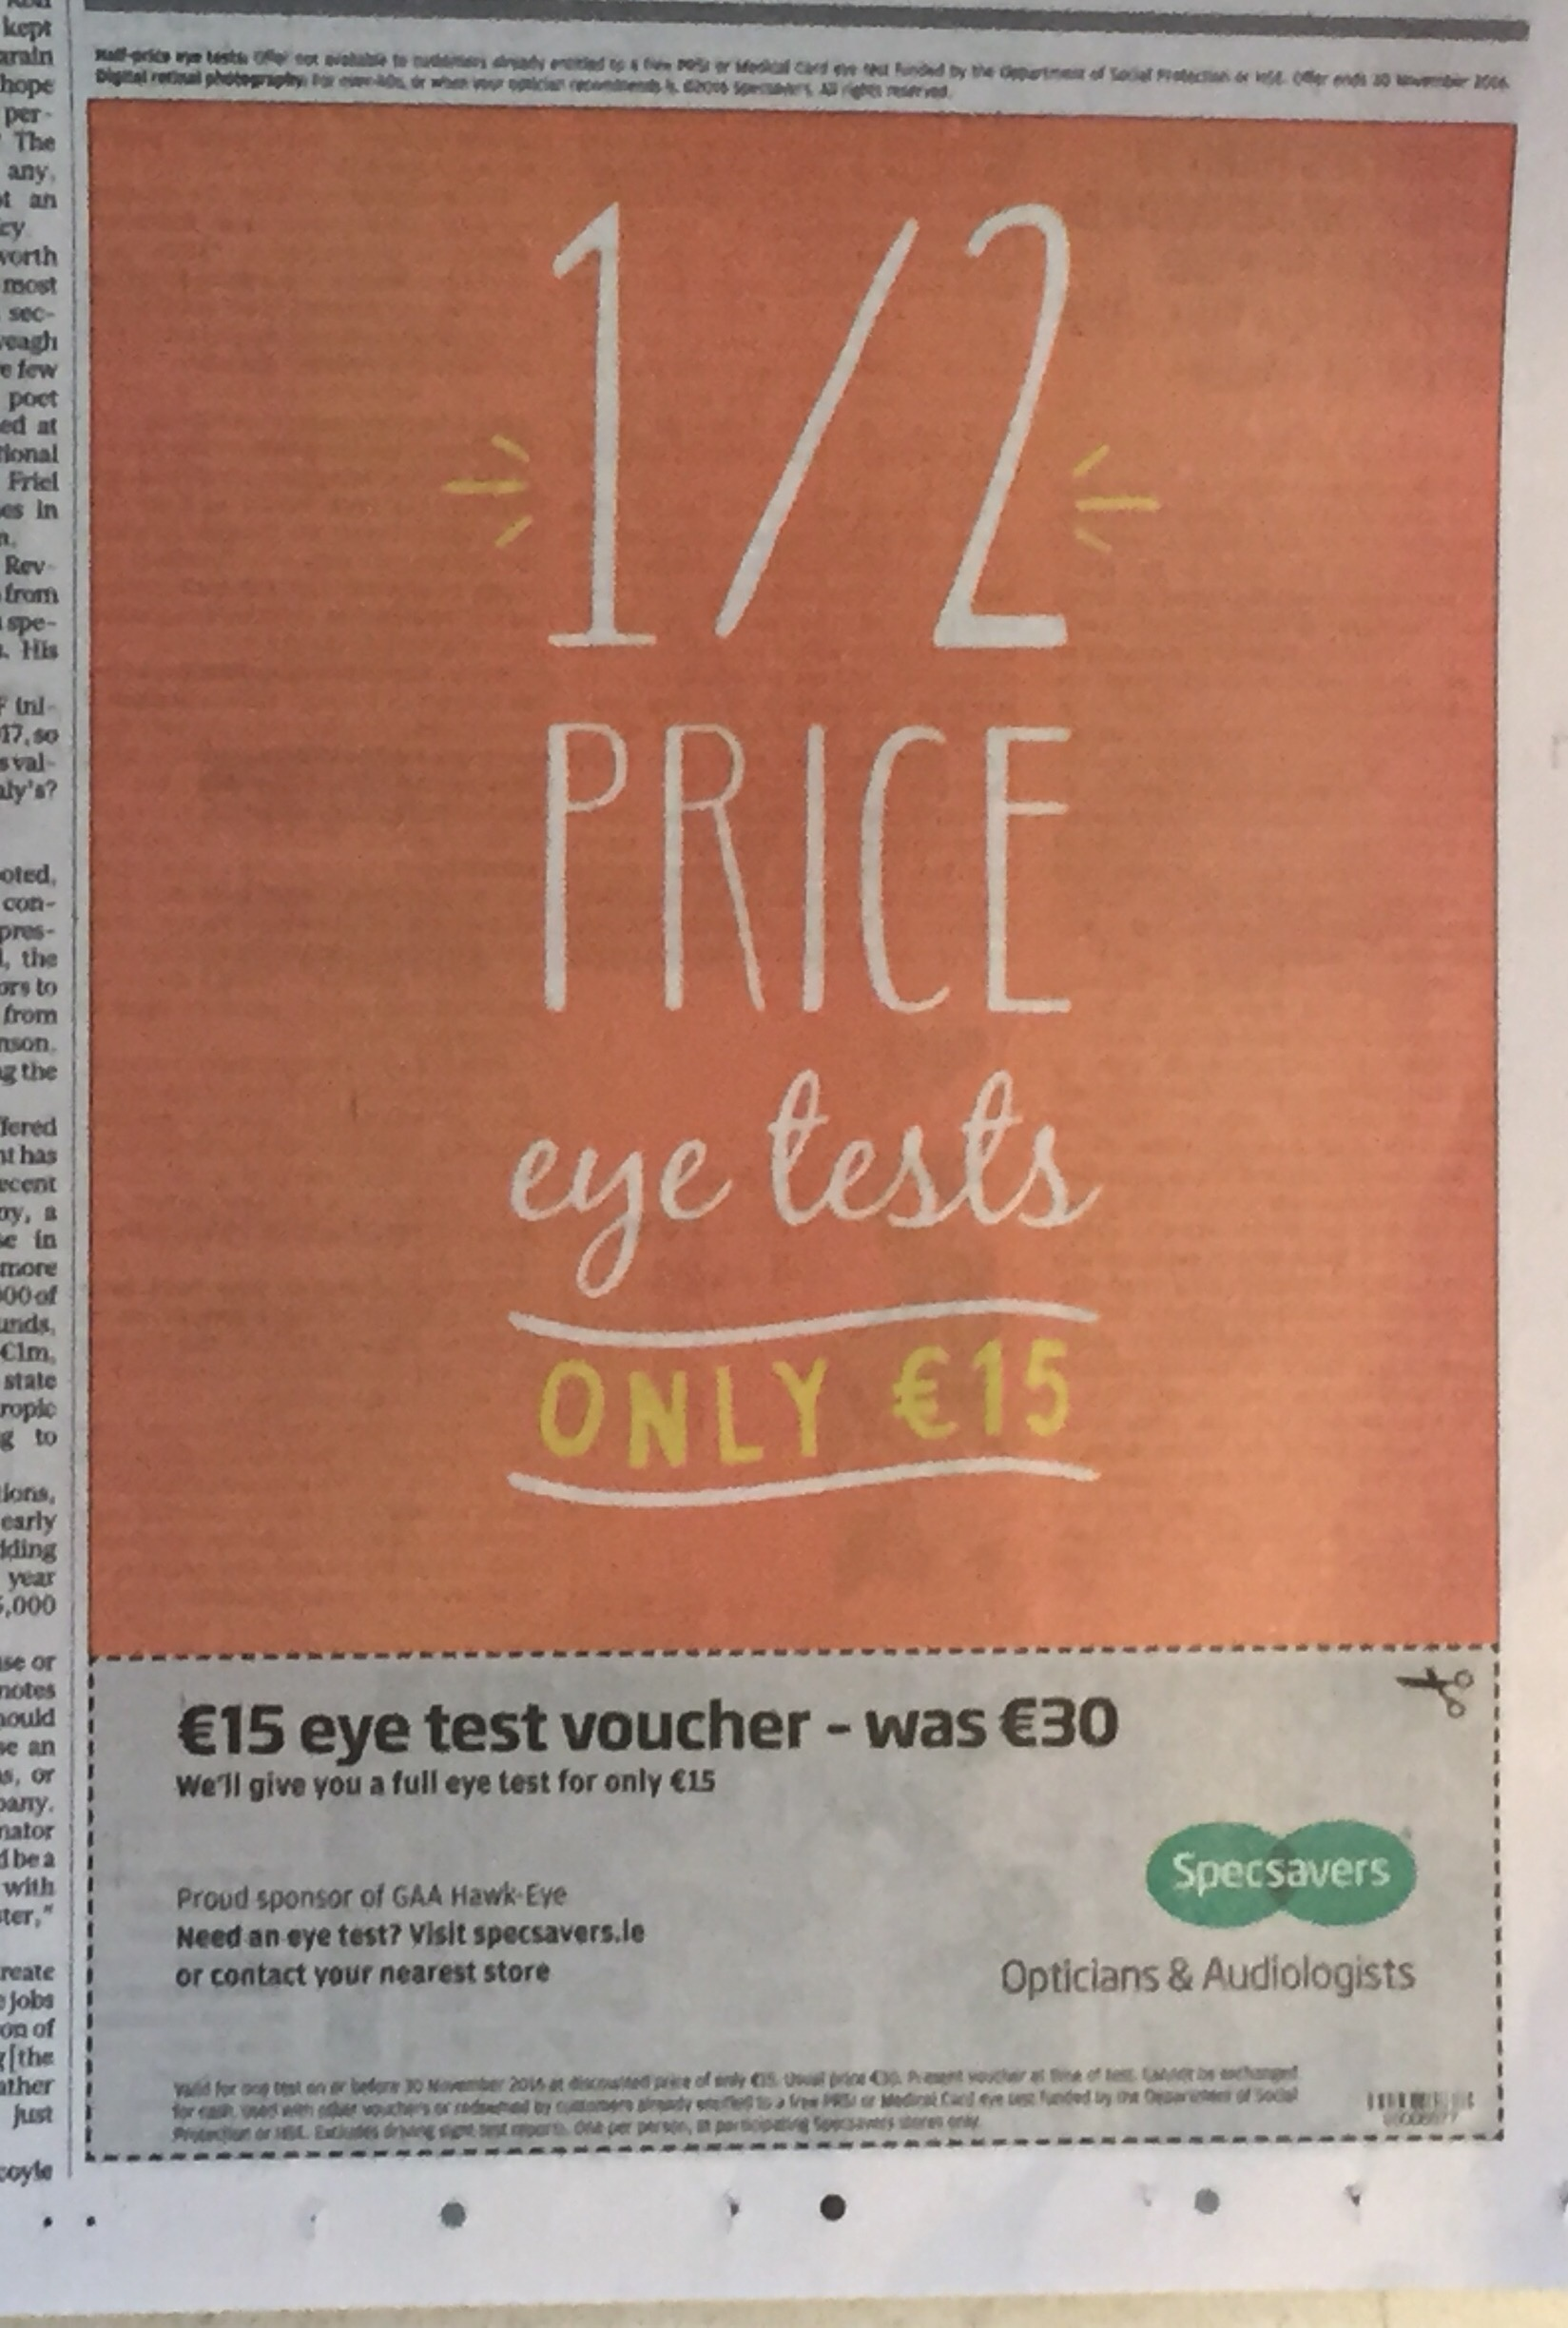 Specsavers – 1/2 price eye tests only €15